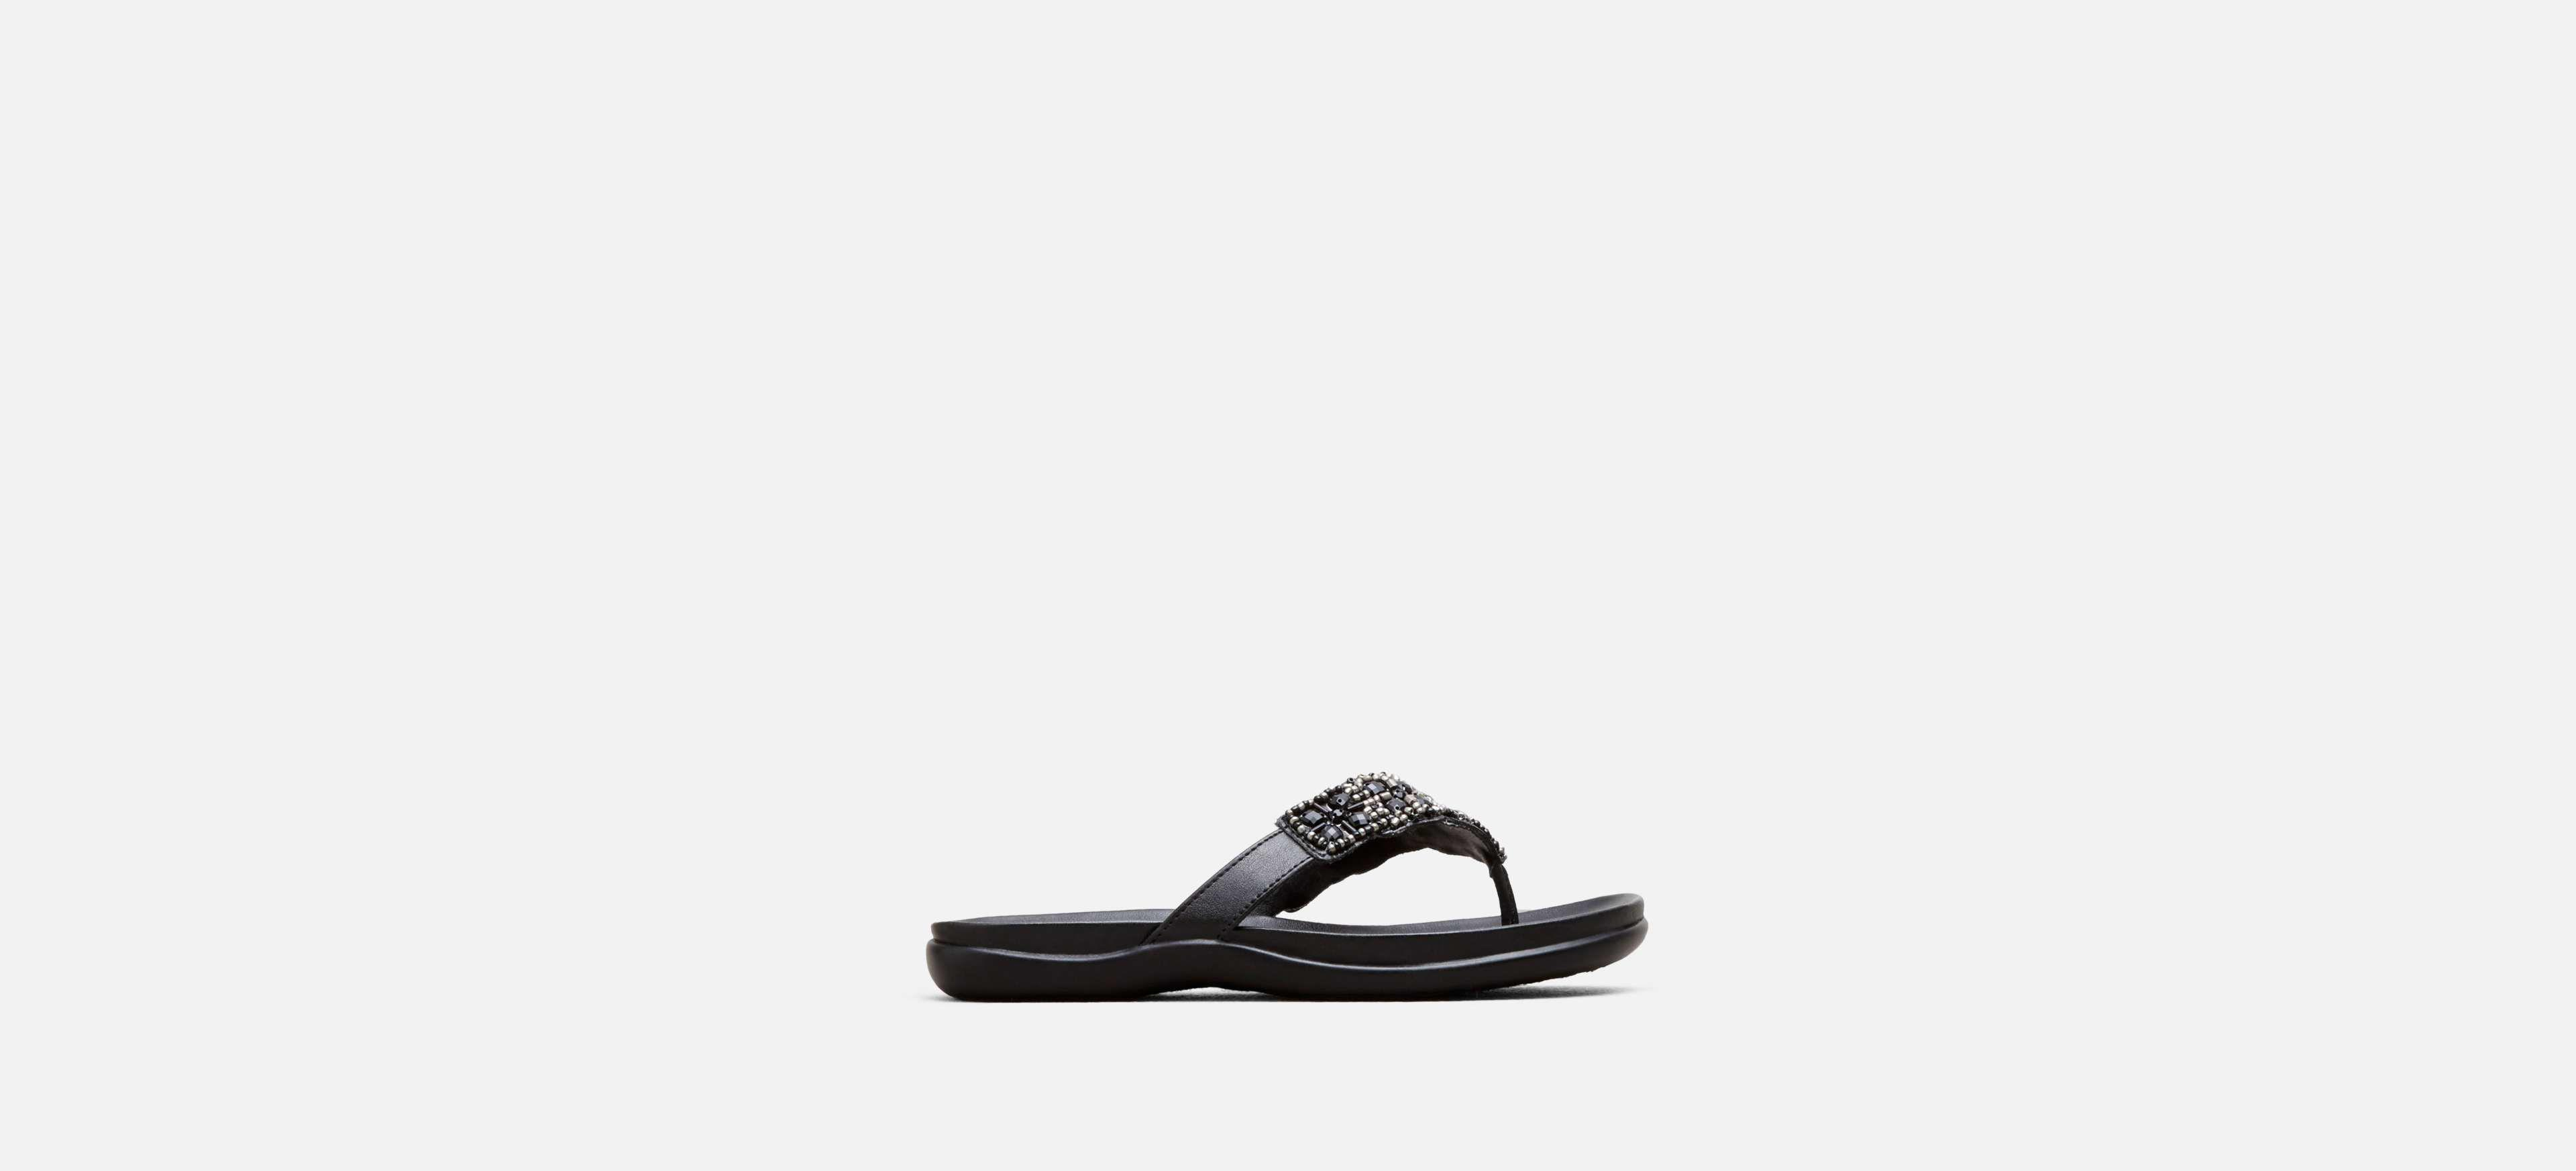 afdbf3b9ad40f8 Lyst - Kenneth Cole Reaction Glam-athon Beaded Sandal in Black